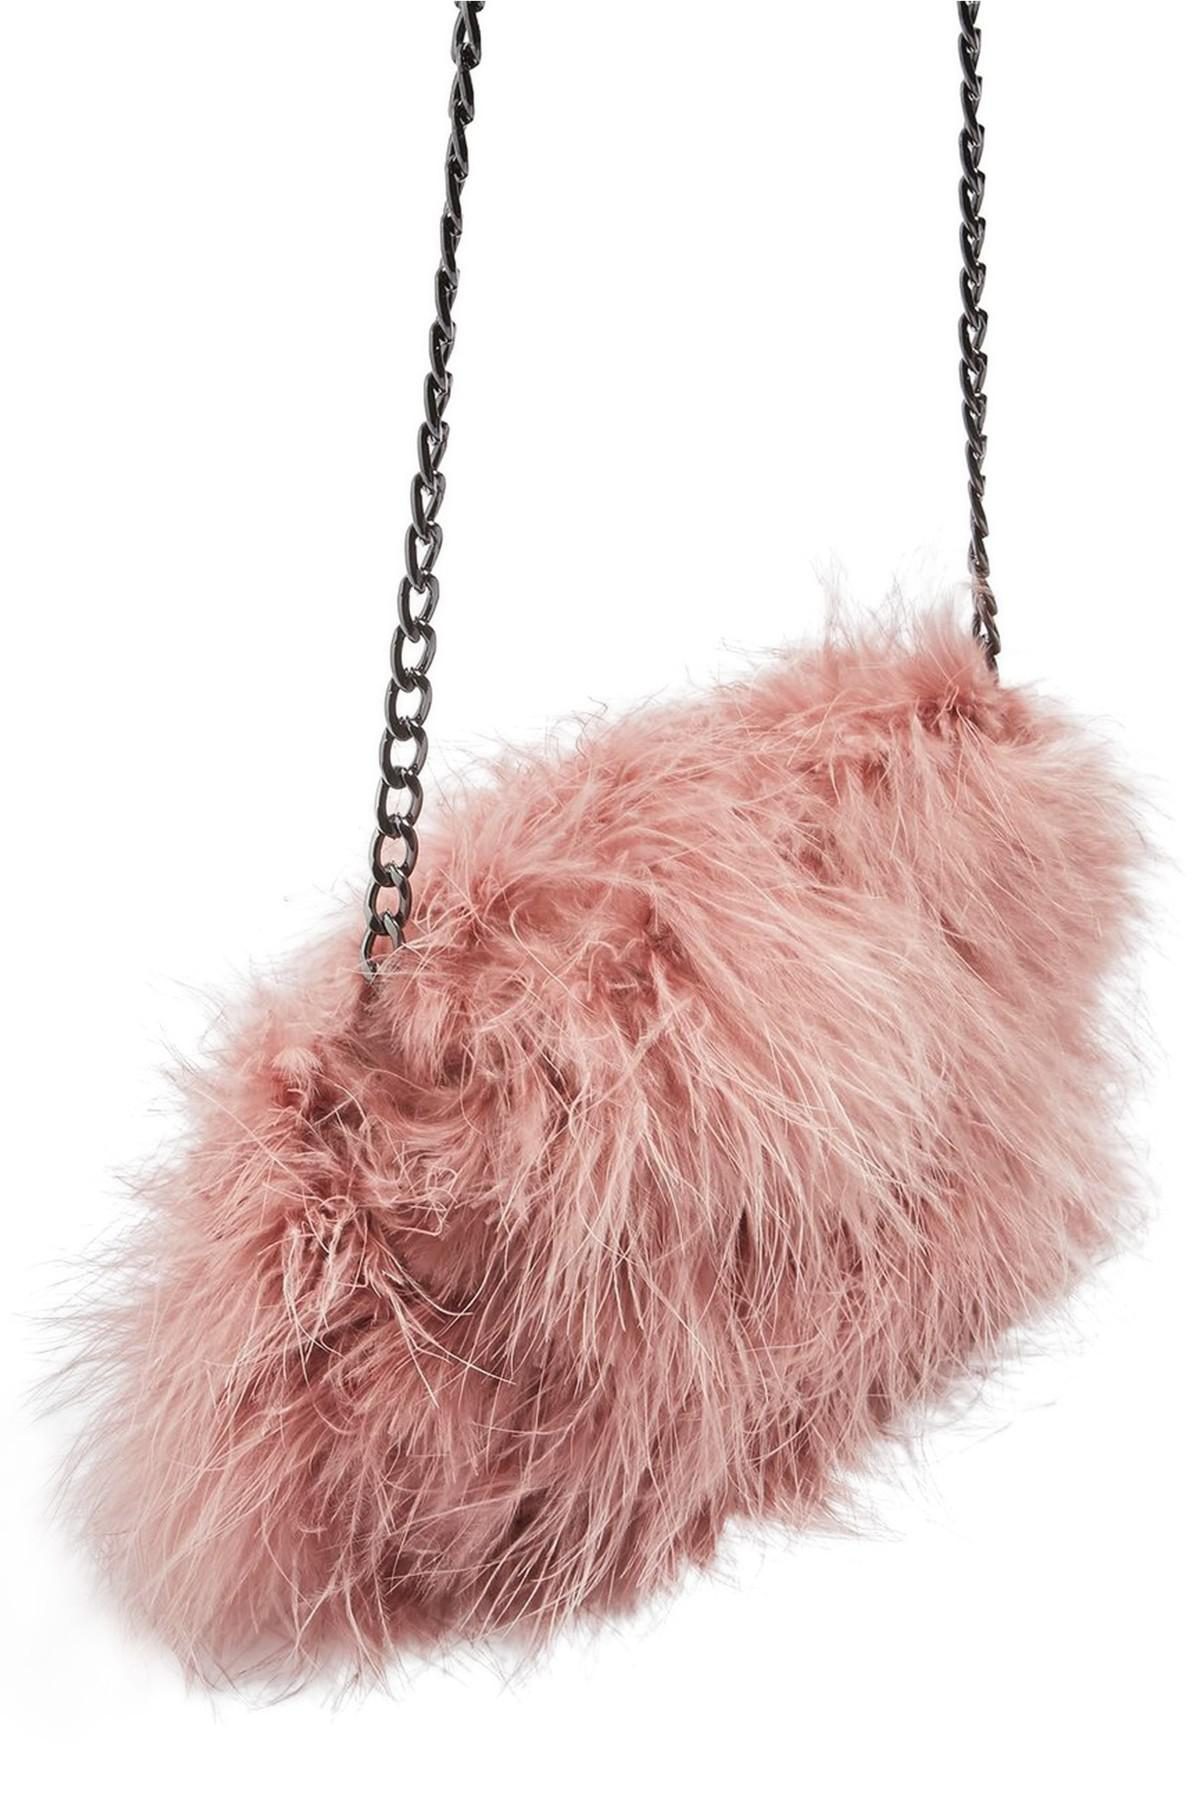 Lyst - TOPSHOP Riga Feather Crossbody Bag in Pink 4c5df69799b92